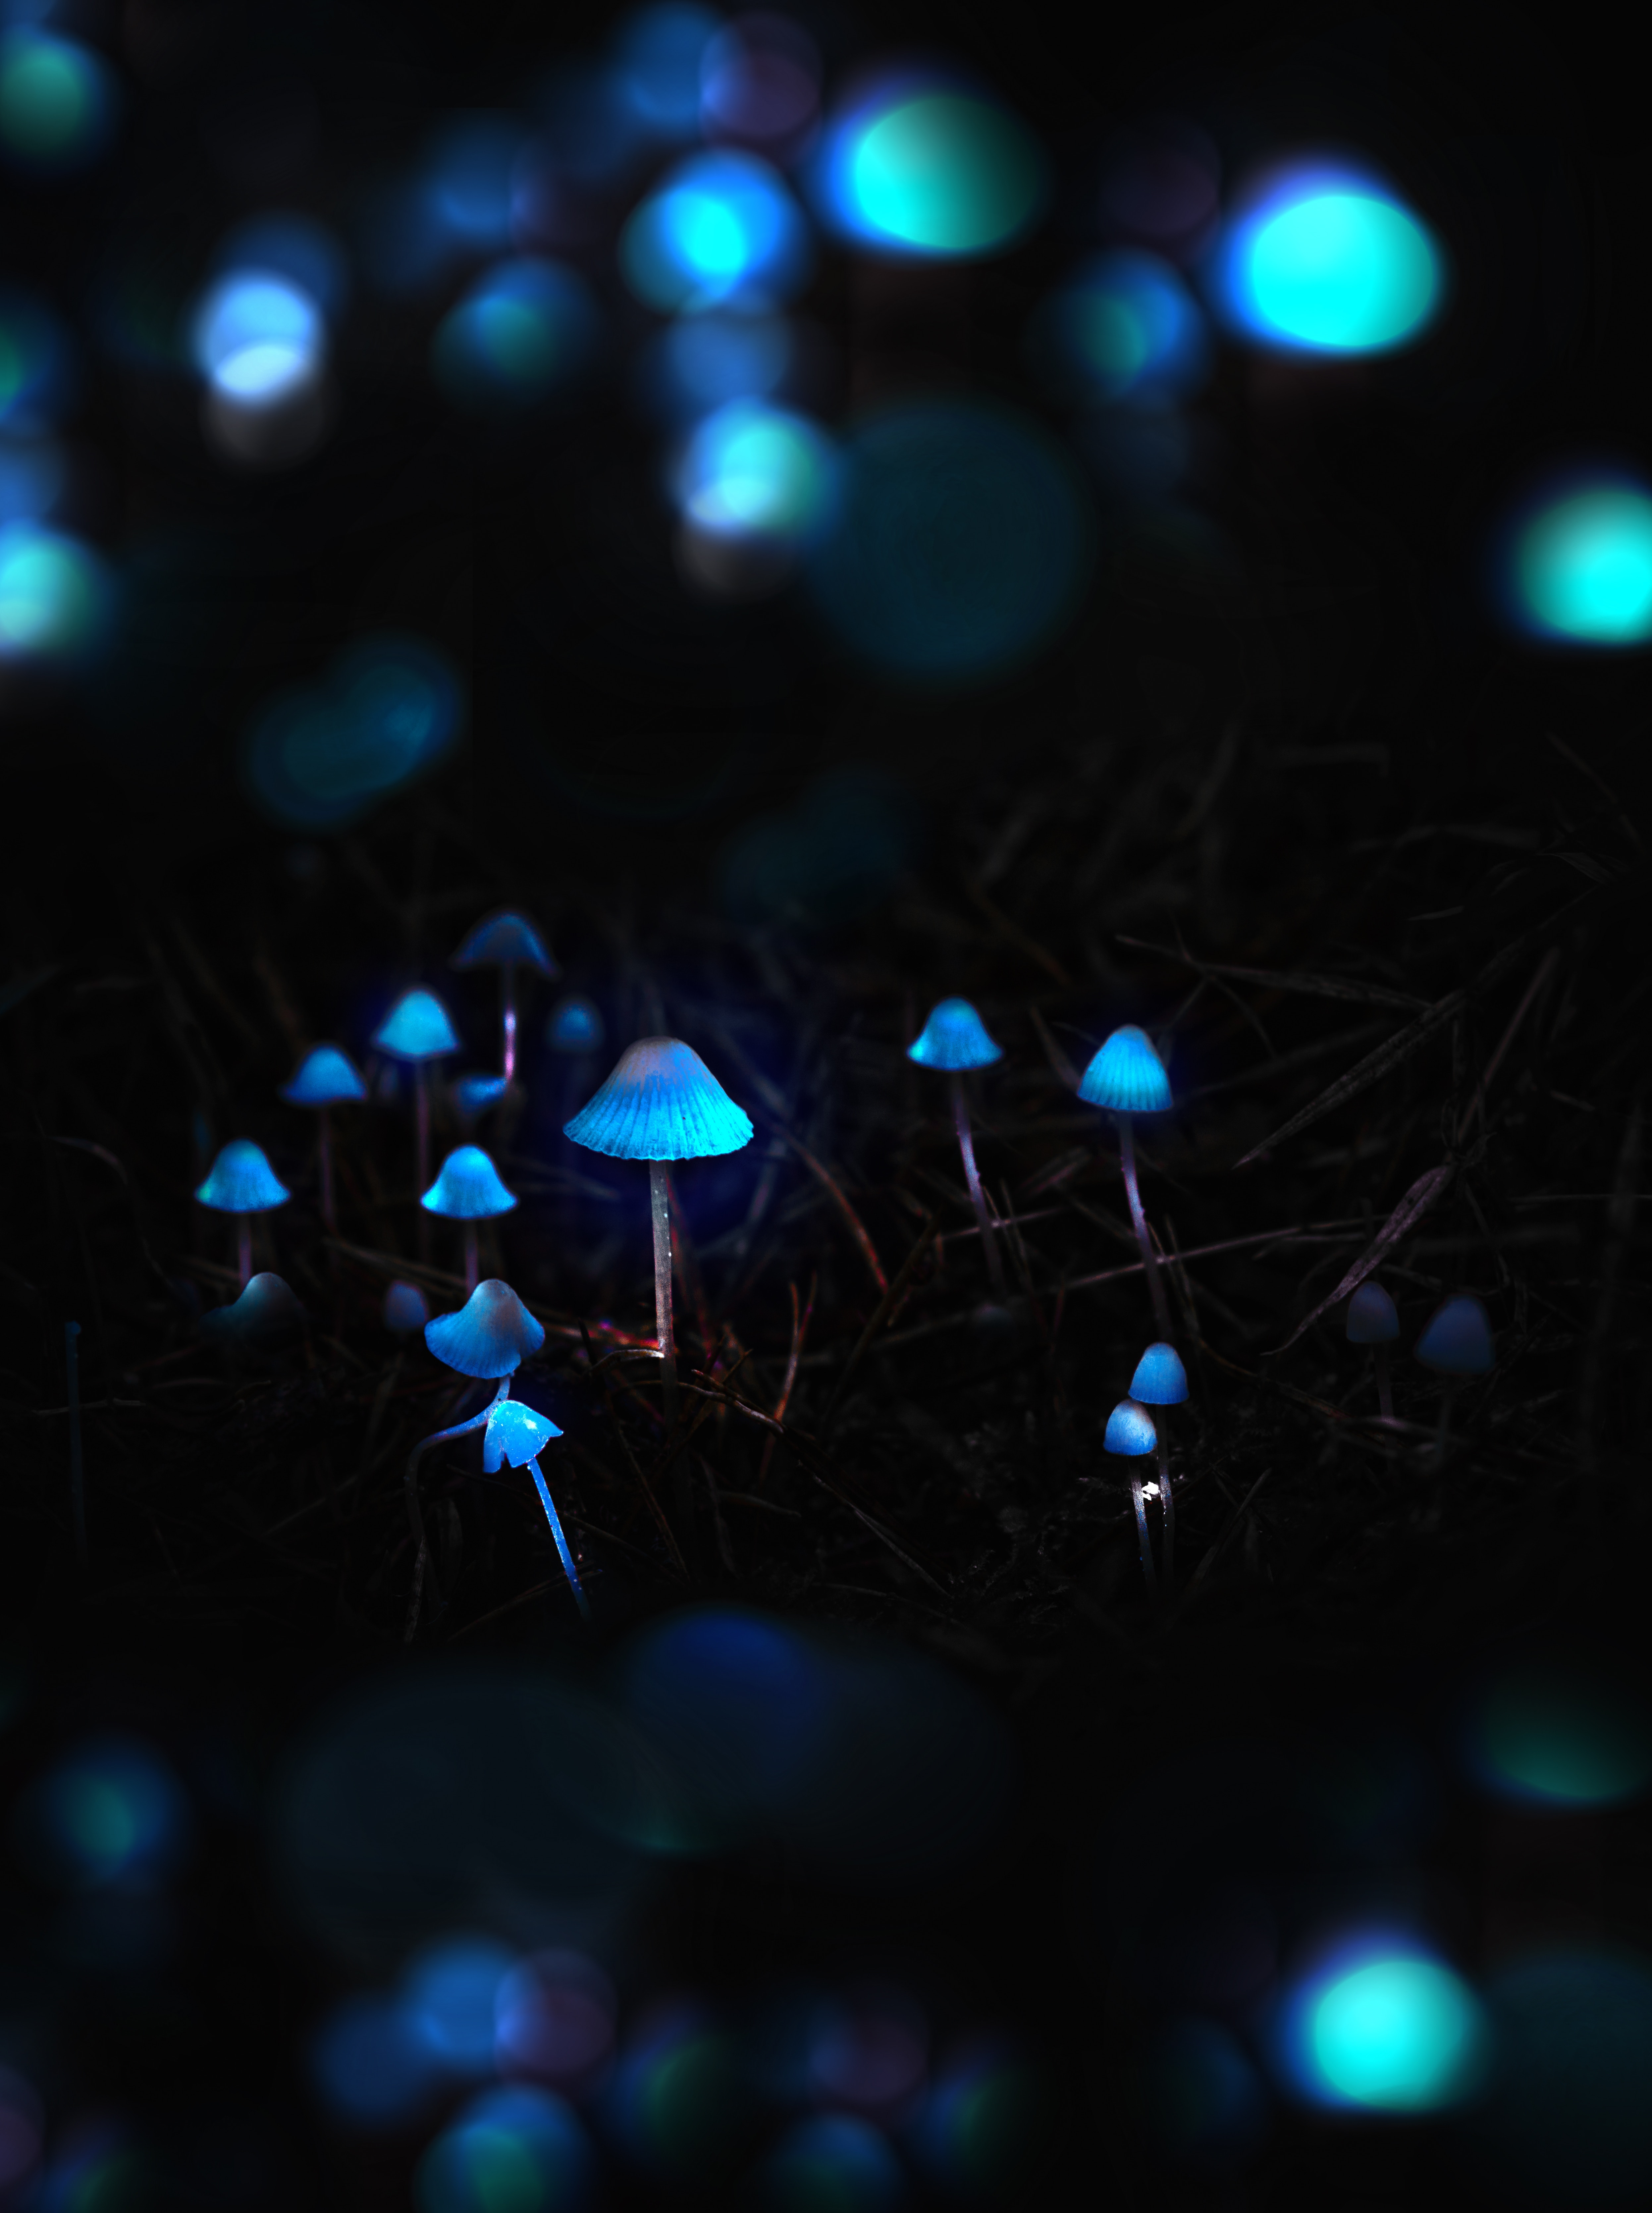 72675 download wallpaper Mashrooms, Dark, Glow, Photoshop, Toadstools, Grebe screensavers and pictures for free